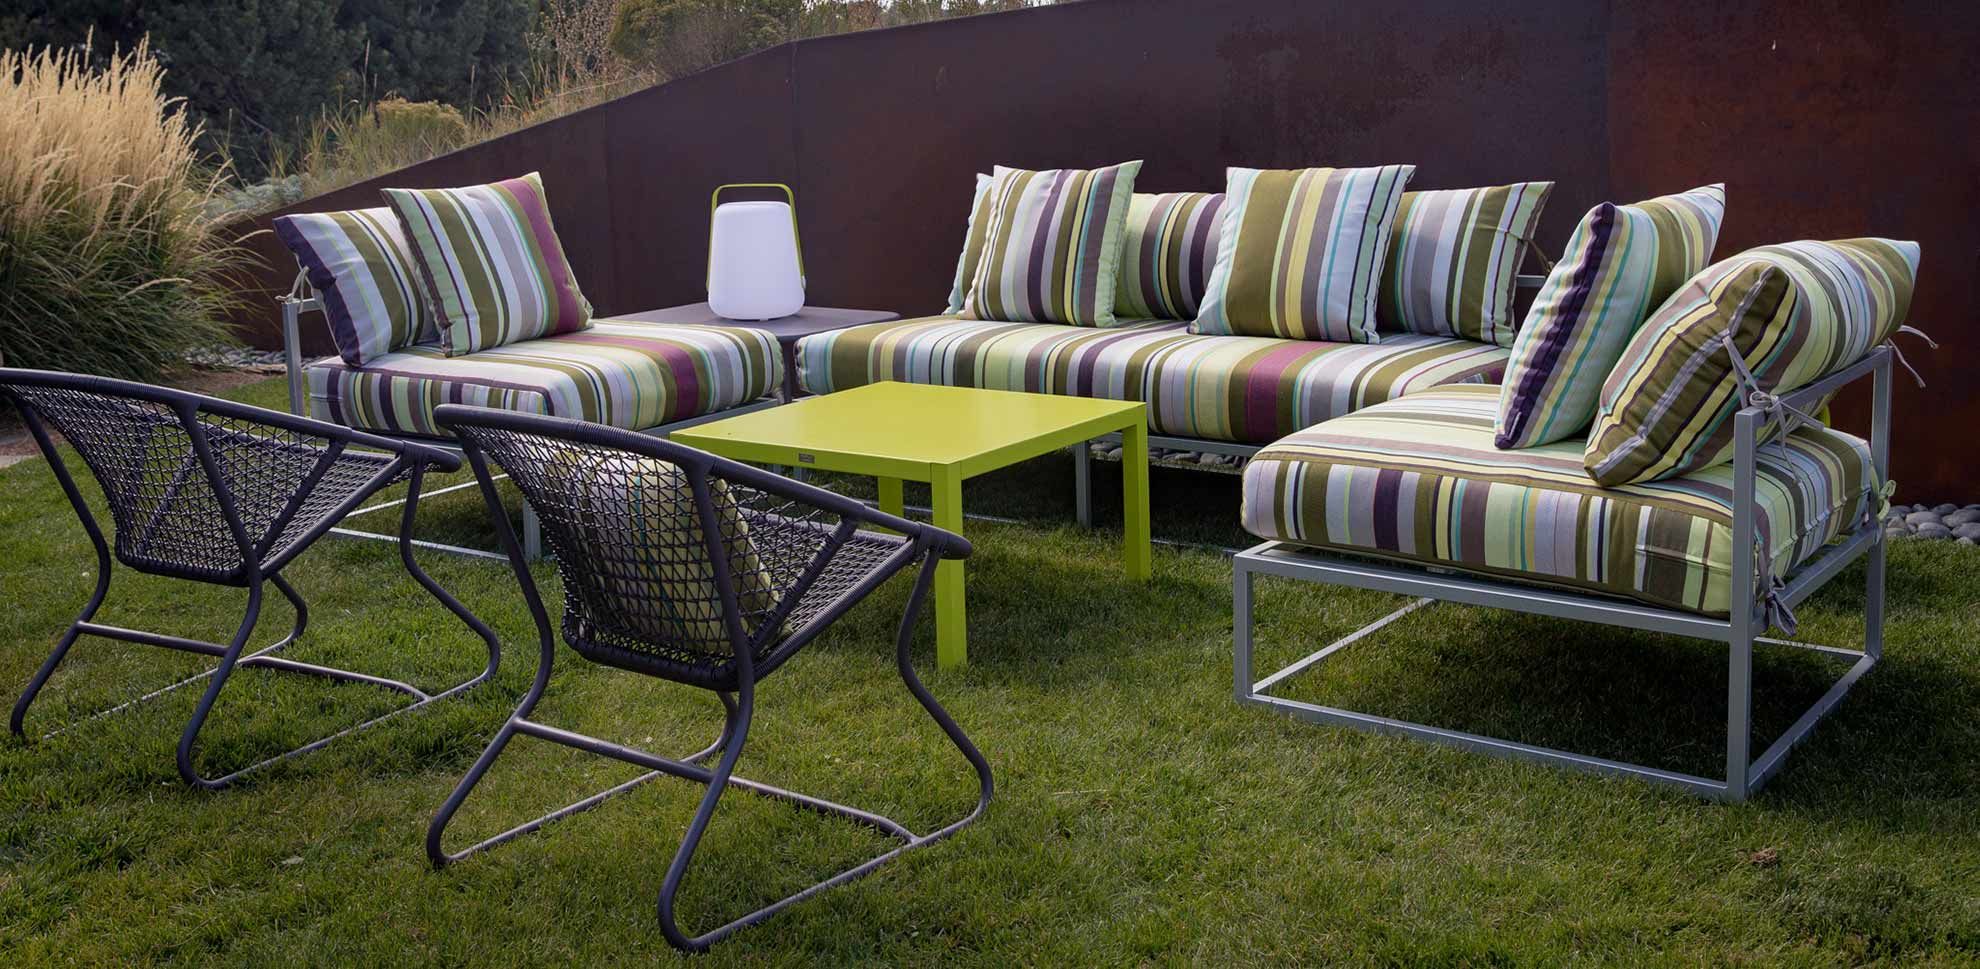 Bon Marche custom striped patio furniture